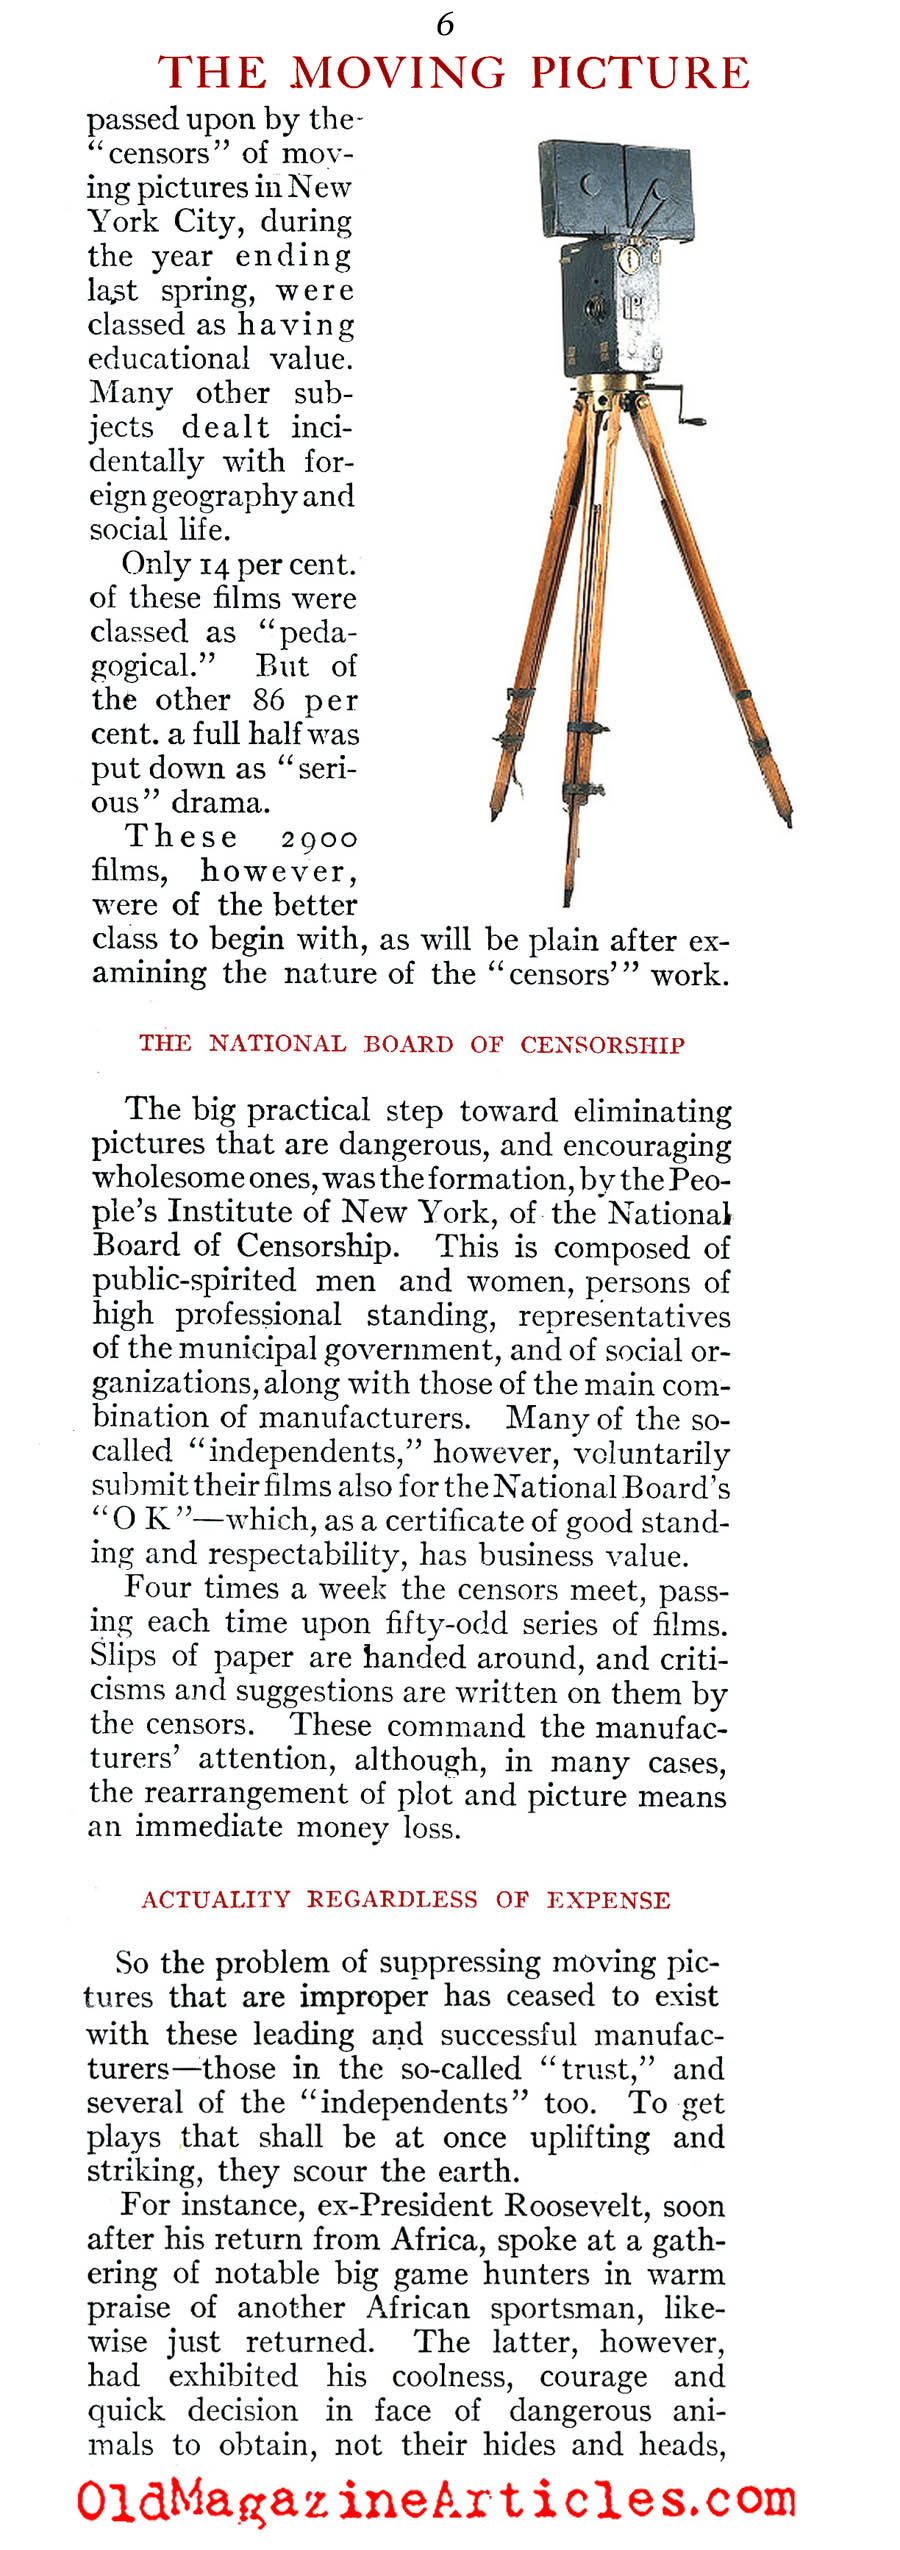 1910 and The Growing Popularity of the ''Flickers'' (Review of Reviews, 1910)